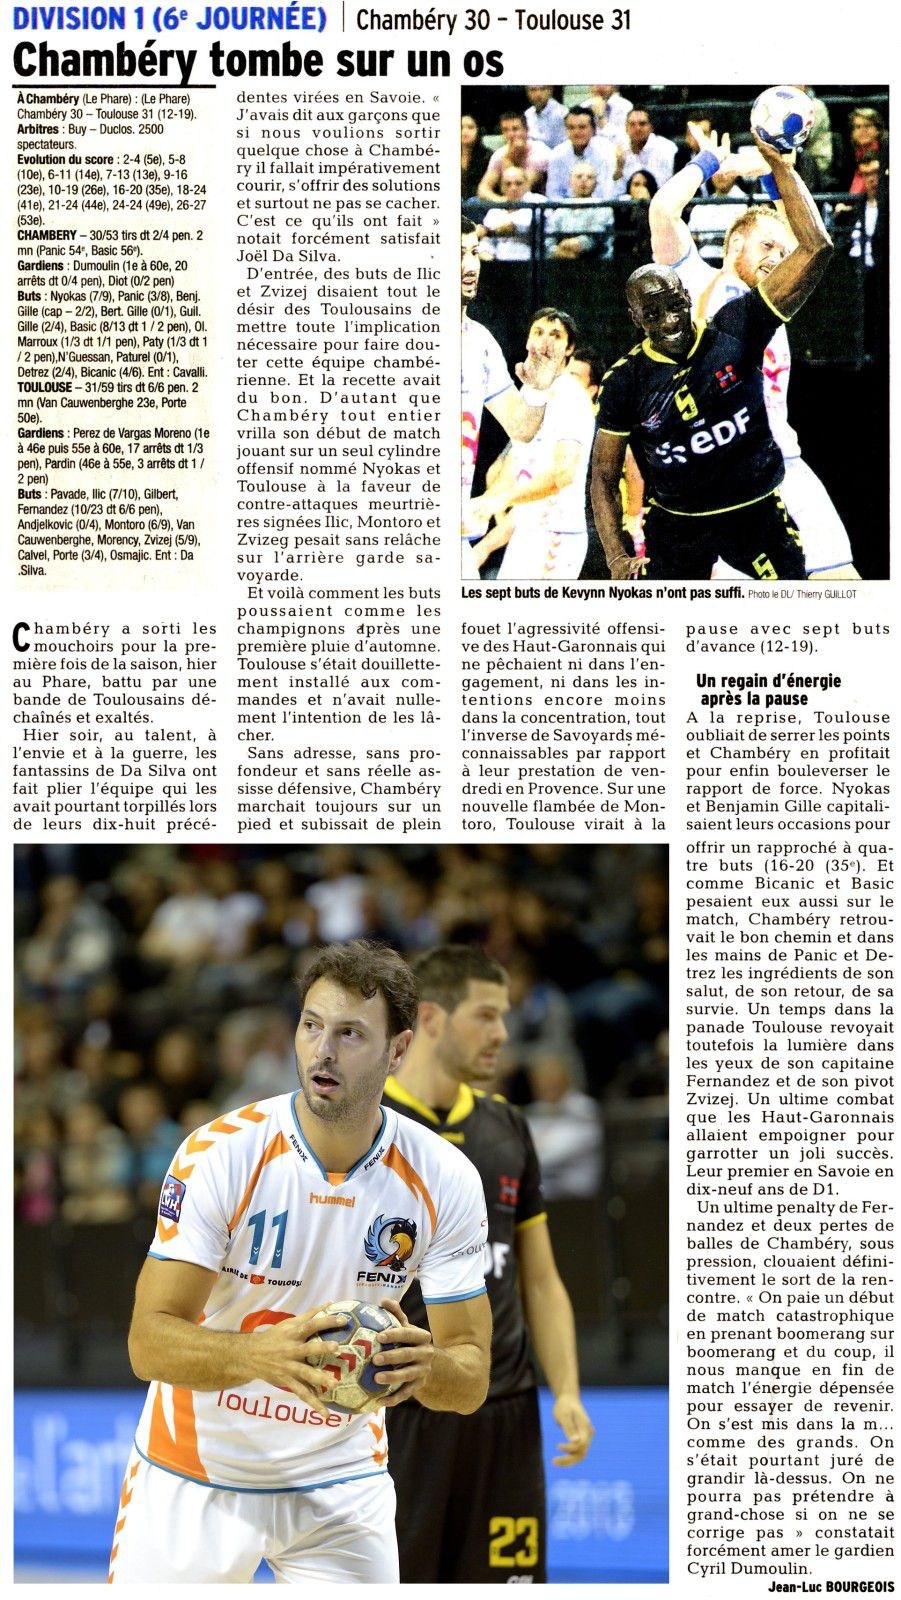 Article-D1-CHAMBERY-TOULOUSE-16102013-pour-le-site.jpg